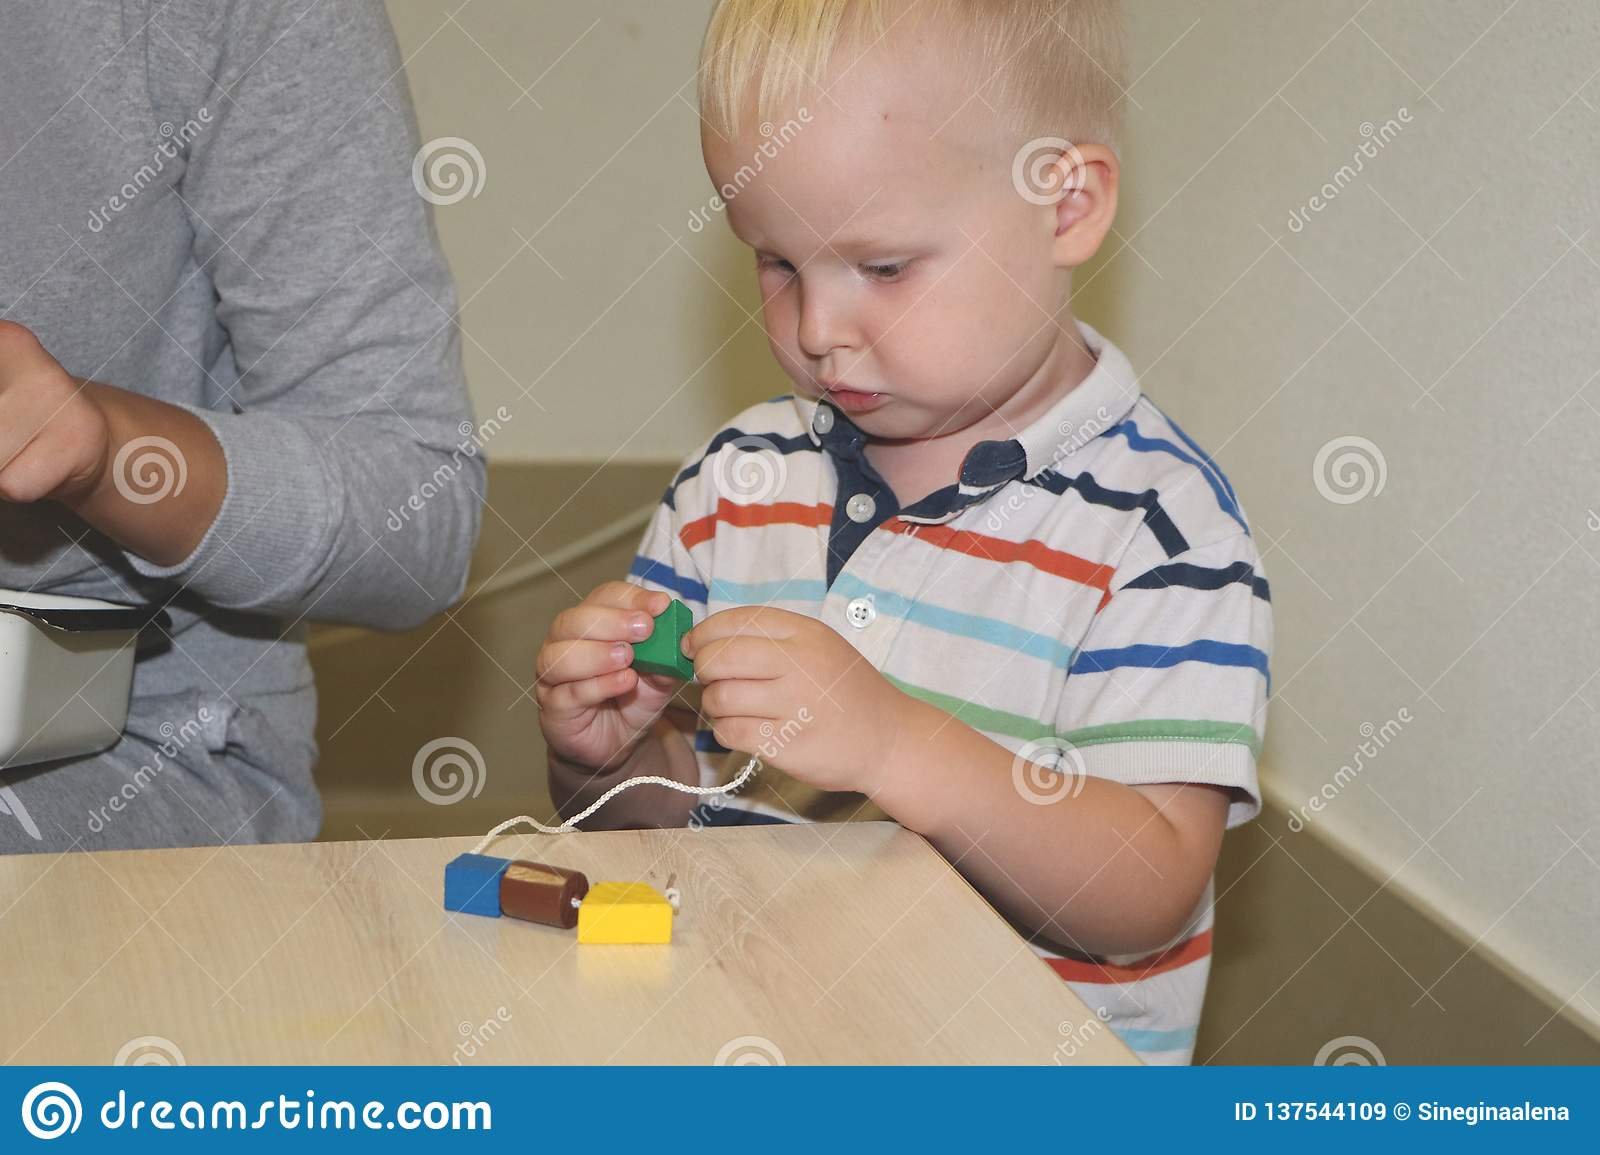 The educator deals with the child in the kindergarten. Creativity and development of the child